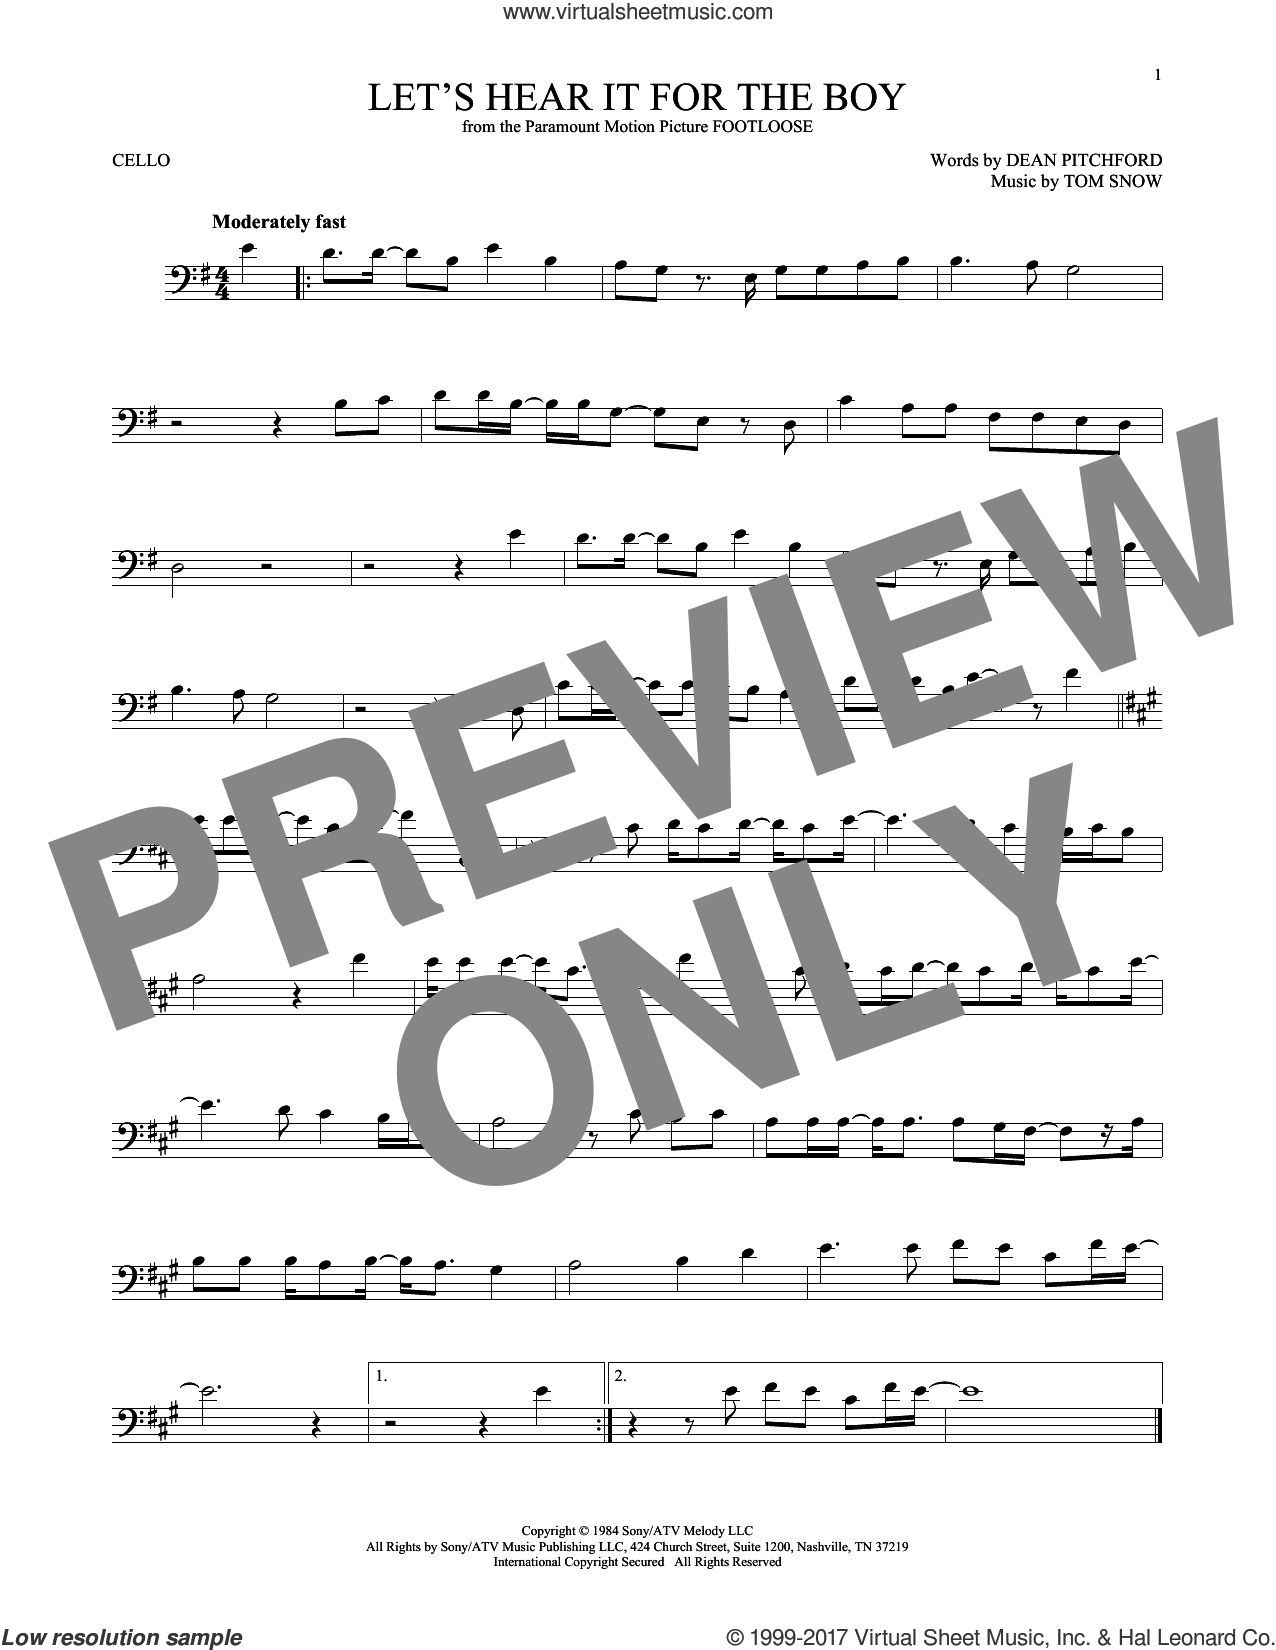 Let's Hear It For The Boy sheet music for cello solo by Deniece Williams, Dean Pitchford and Tom Snow. Score Image Preview.